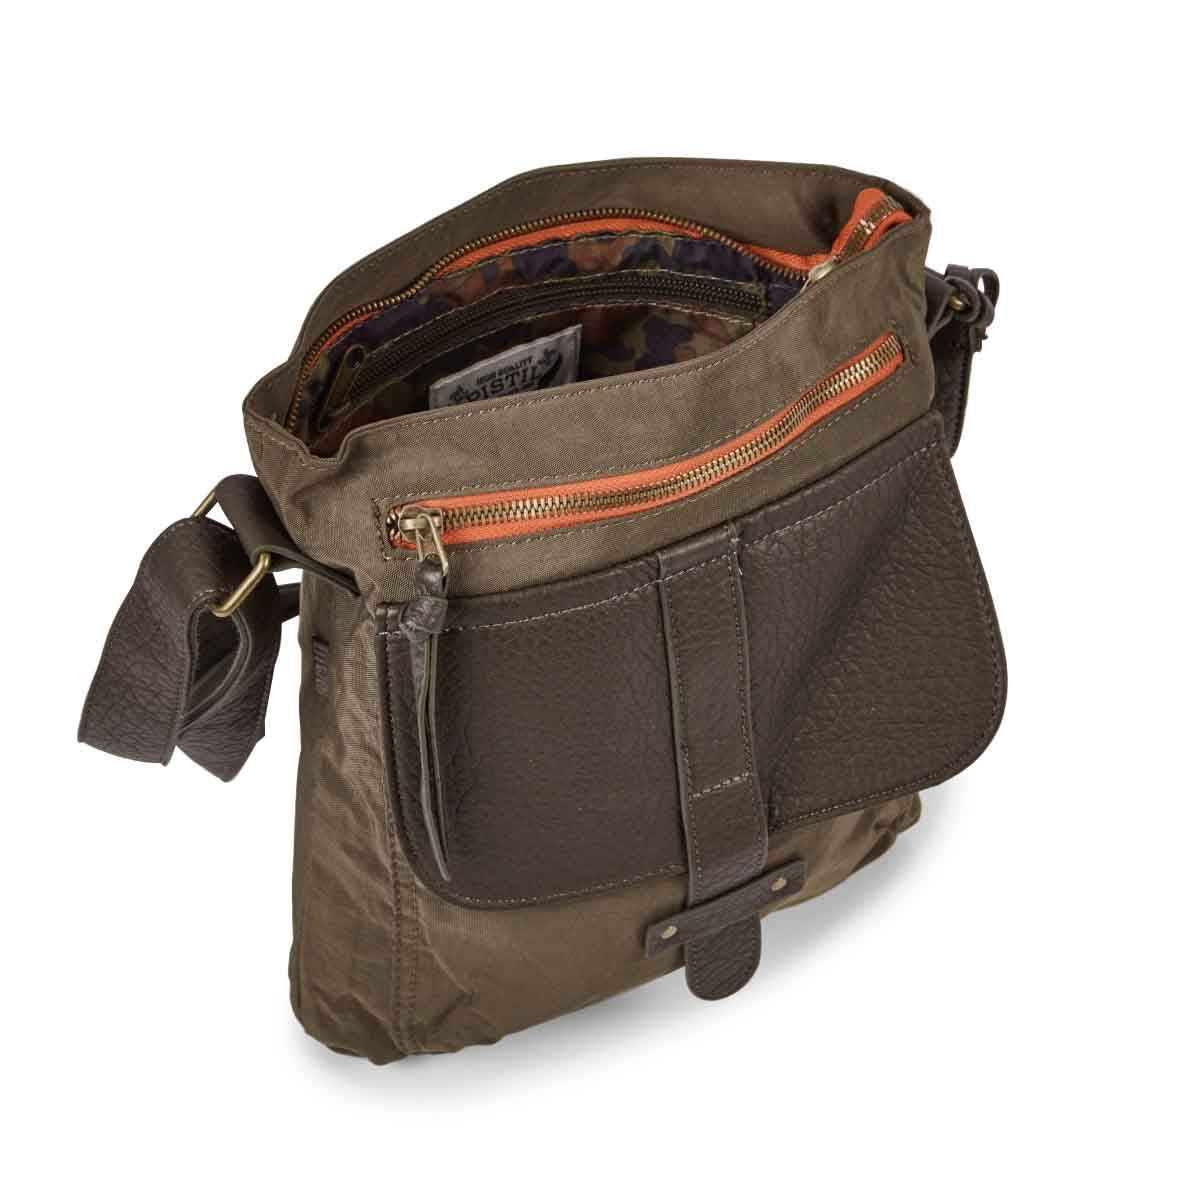 Lds Gotta Run jungle crossbody bag